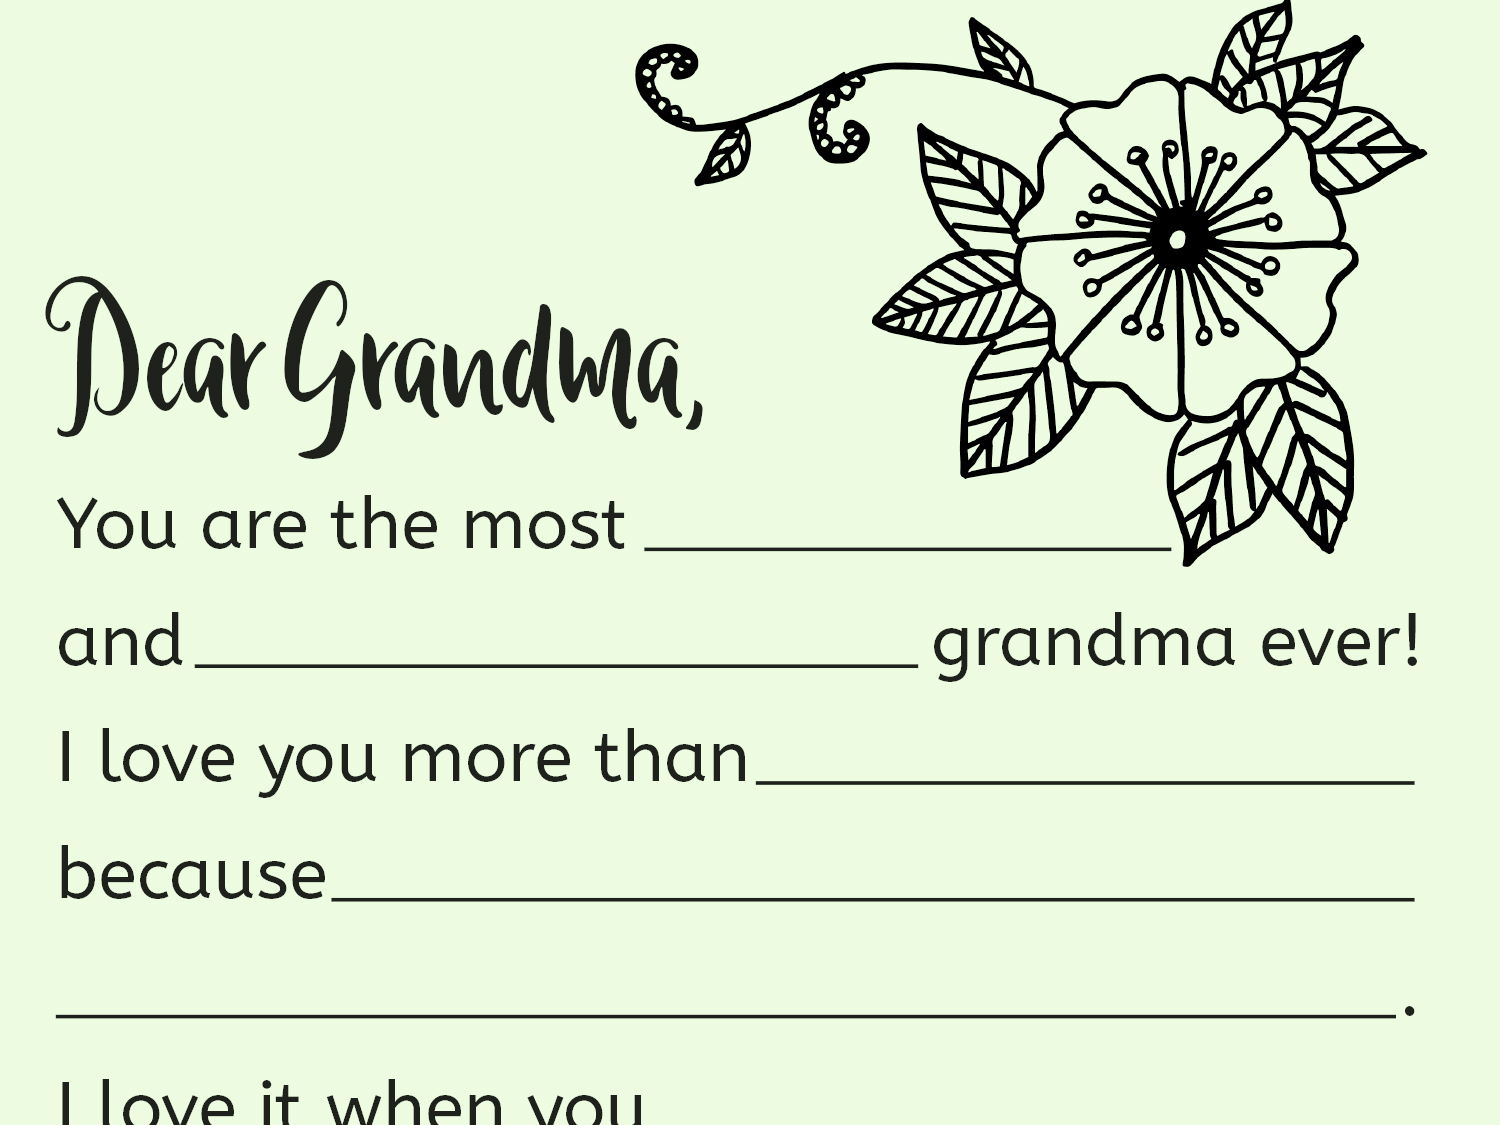 image relating to I Love You Because Printable titled A Printable Fill-inside Letter for Grandma Worksheets